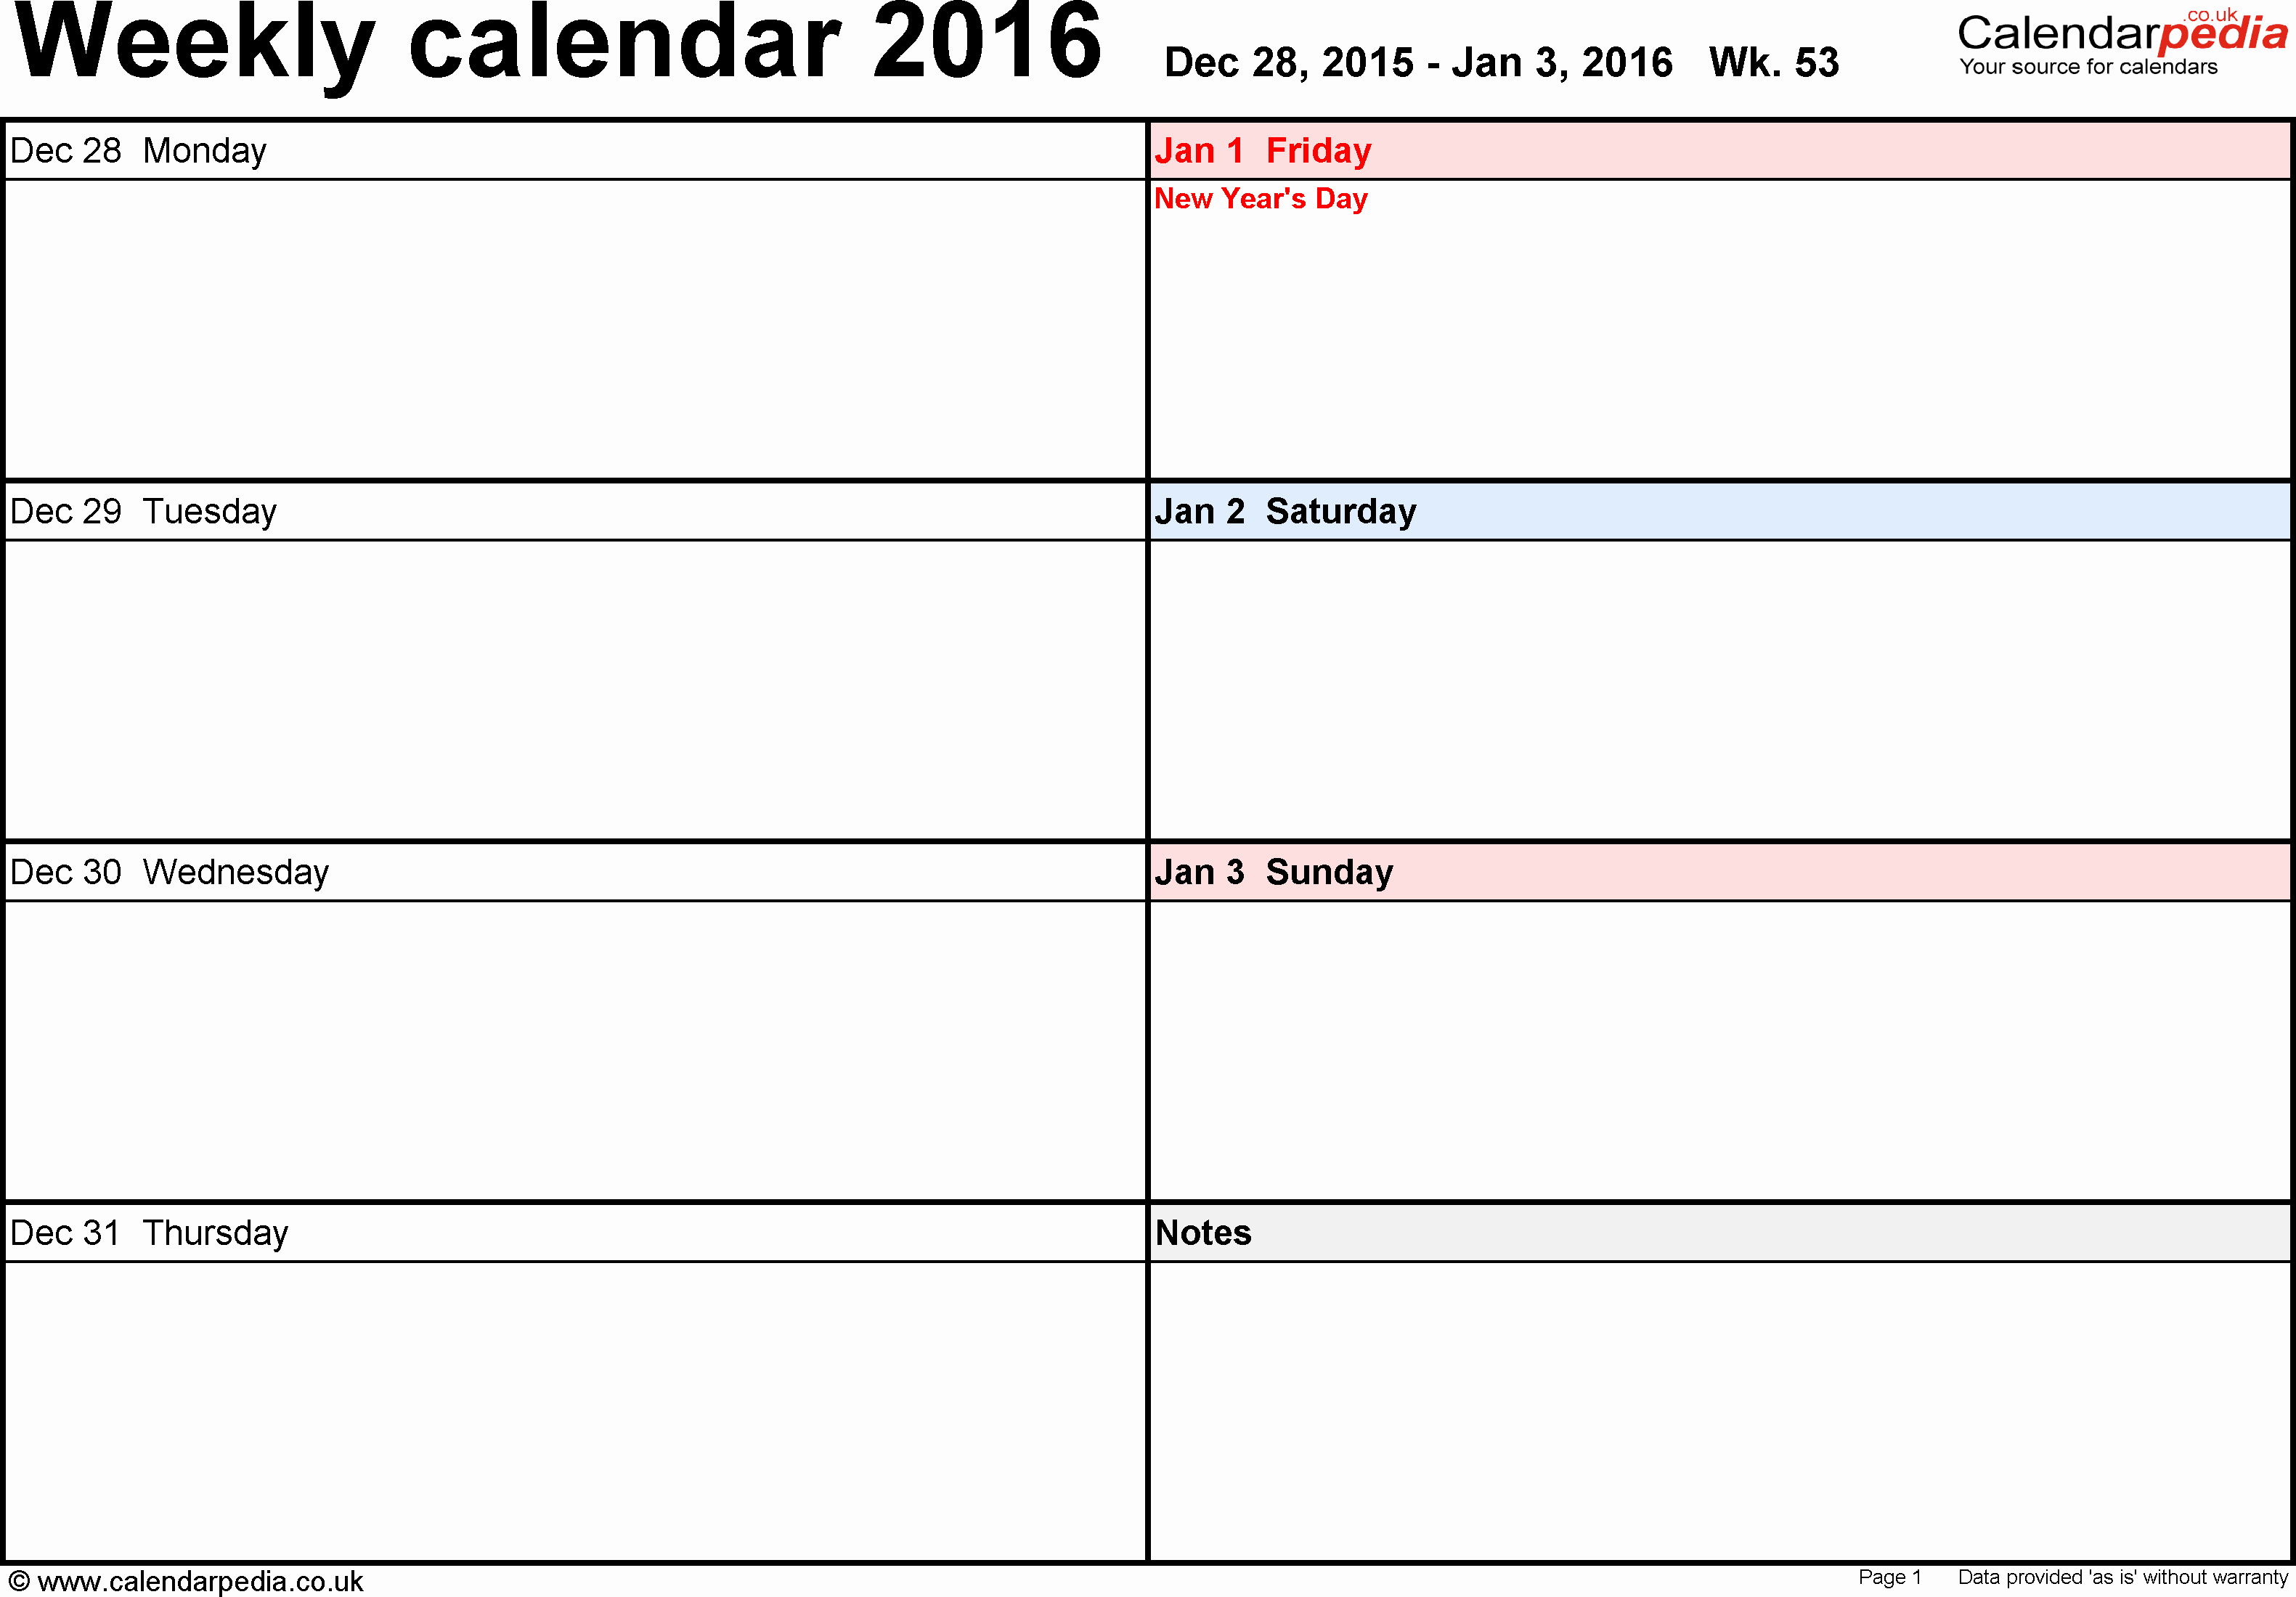 2 Week Calendar Template Word Elegant Weekly Calendar 2016 Uk Free Printable Templates for Word